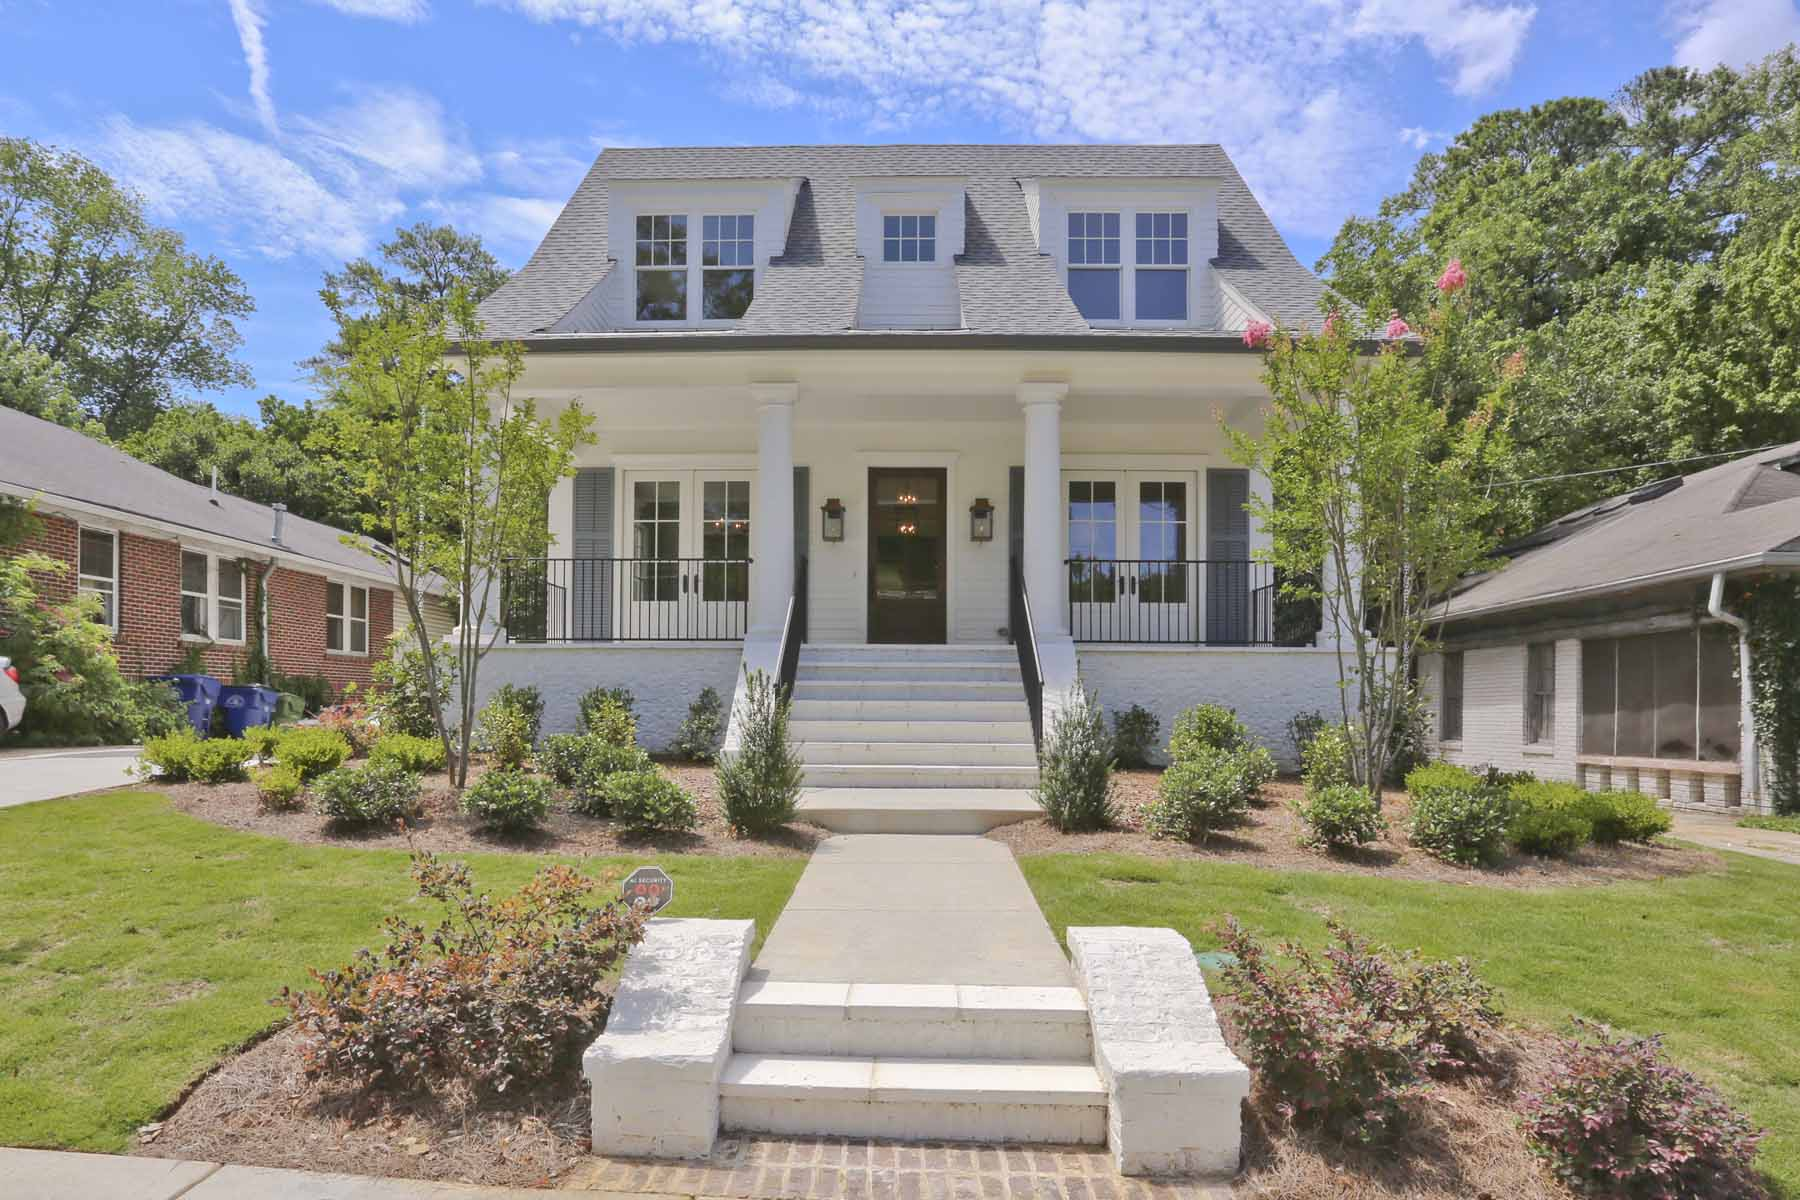 Single Family Home for Active at Newer Construction in Morningside Close to the BeltLine and Piedmont Park 797 Yorkshire Road NE Atlanta, Georgia 30306 United States